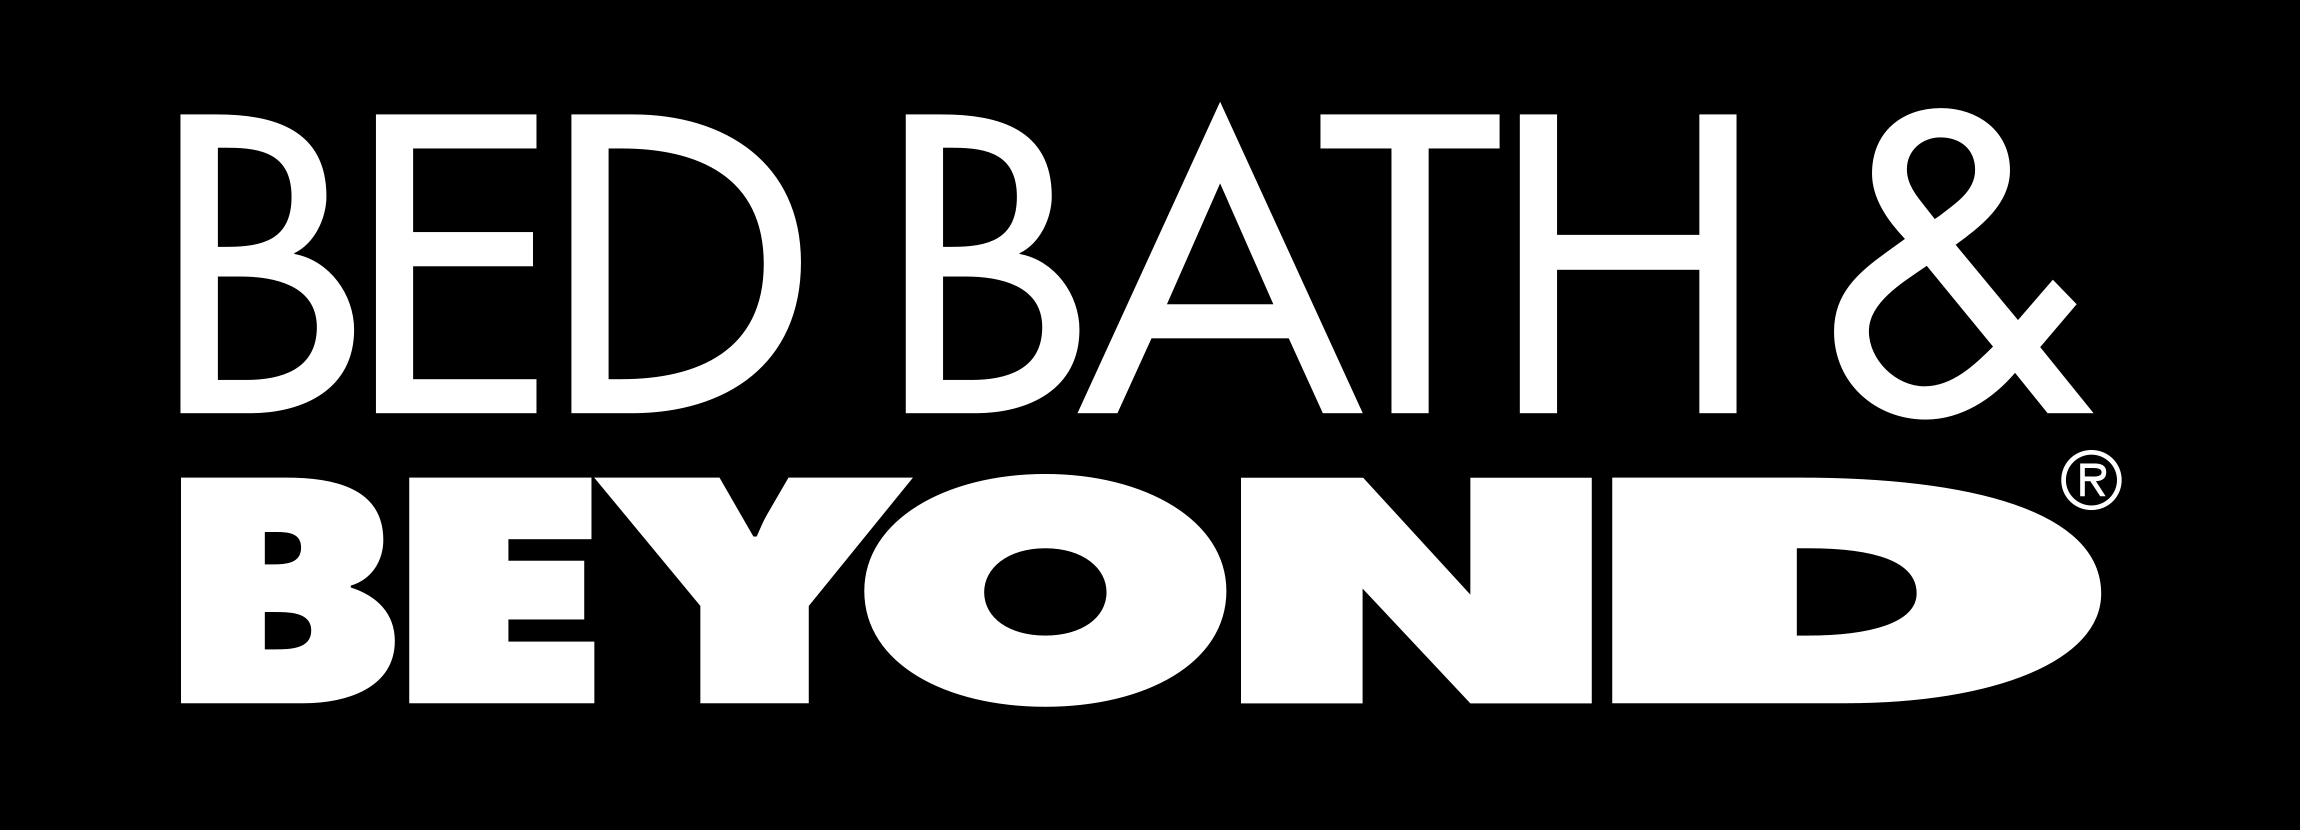 Bed Bath and Beyond Logo】.